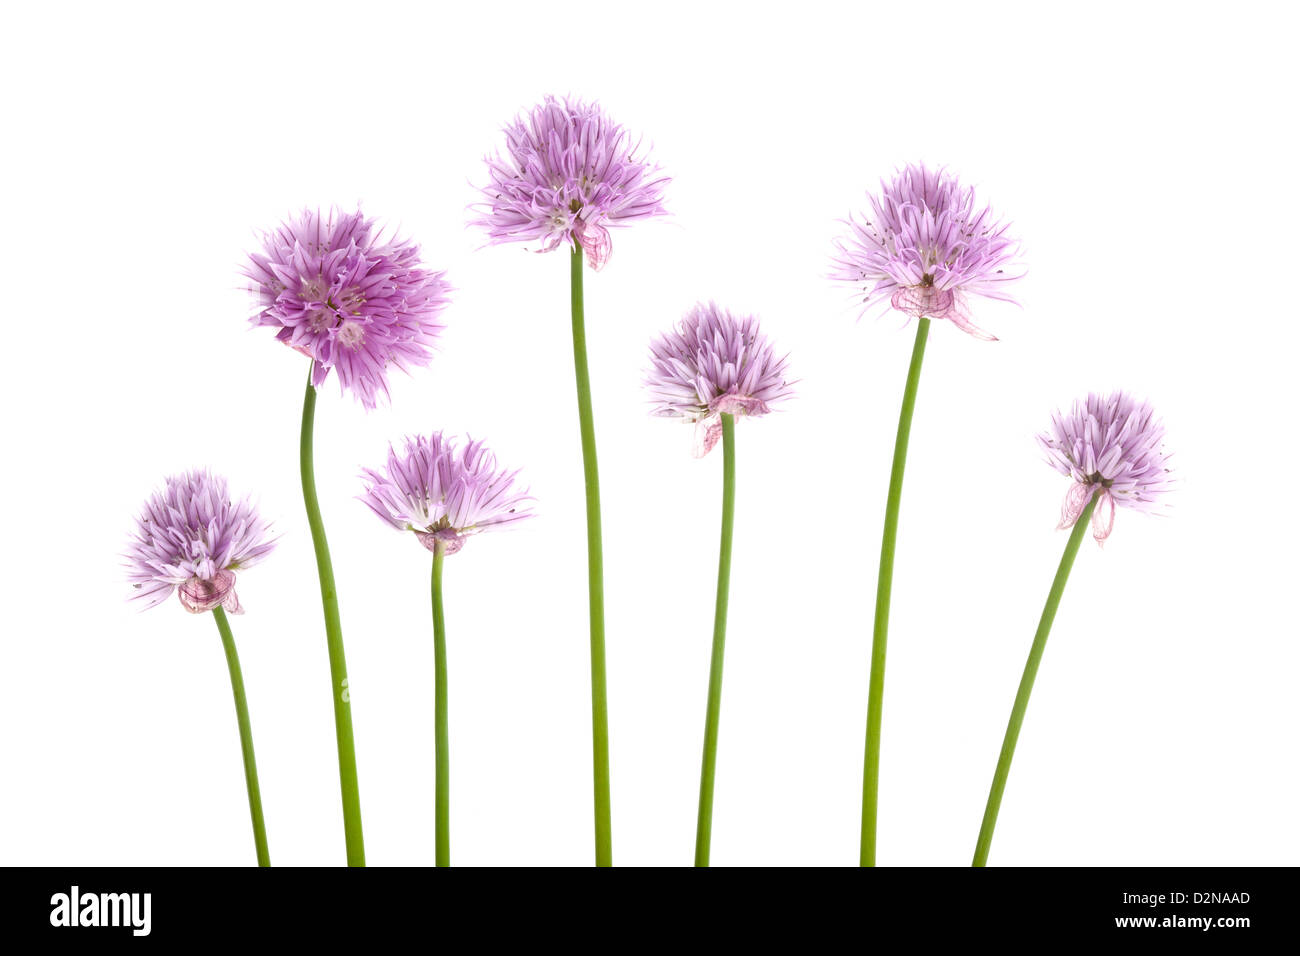 Allium schoenoprasum Chives flowers isolated on white background. - Stock Image